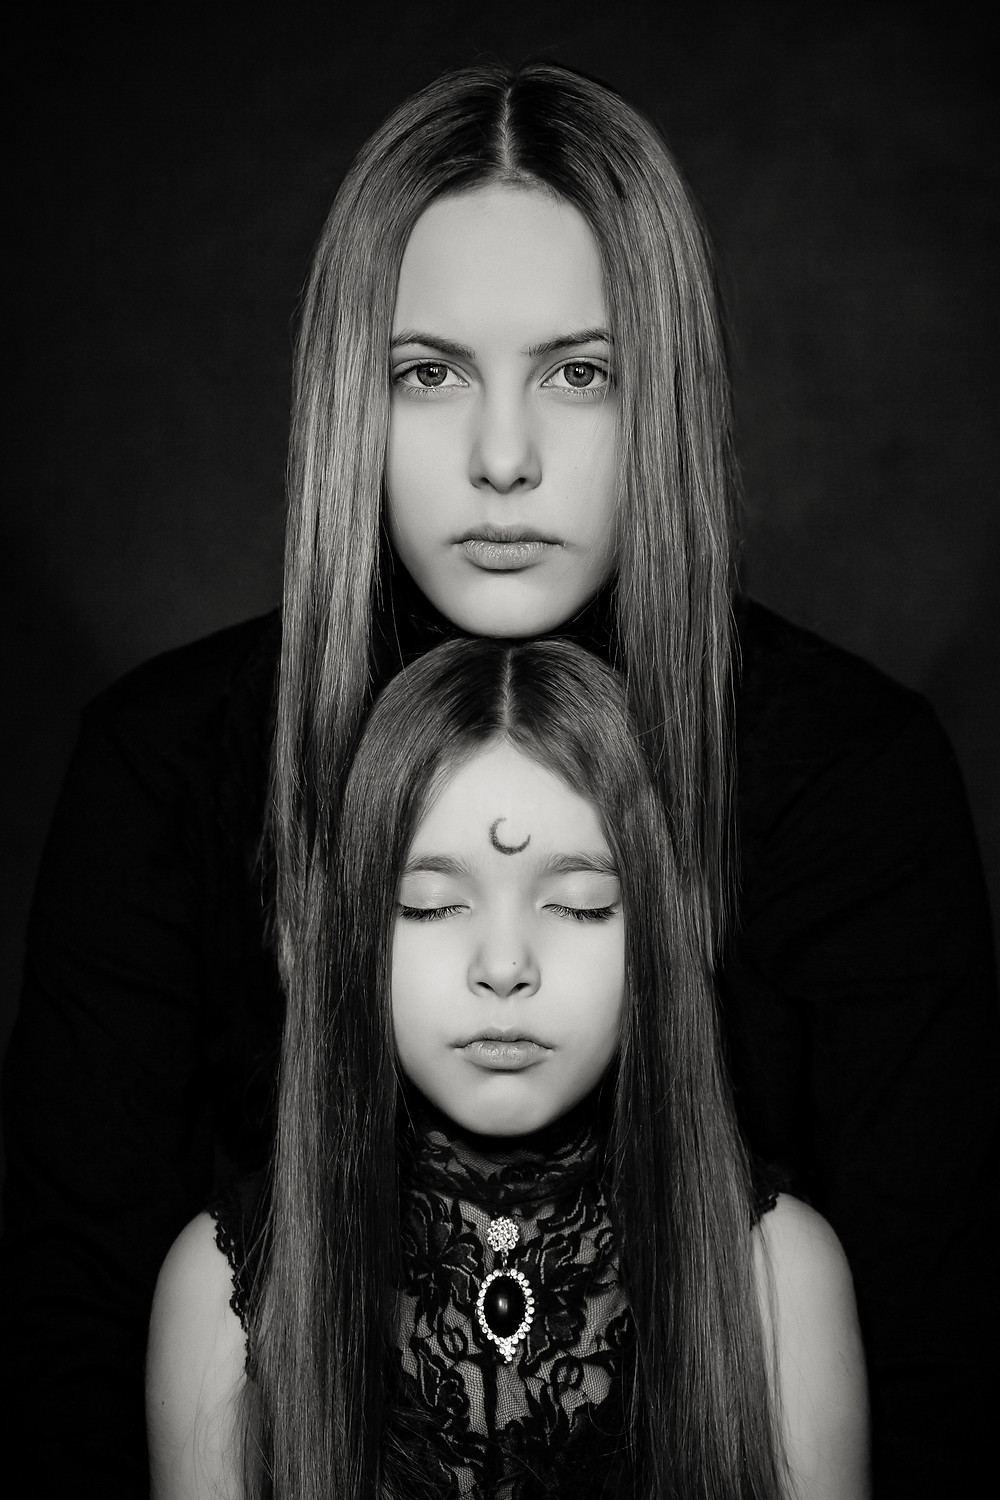 Mother's who are supportive and open to their daughters on their path of any spiritual path will show the child that they can make their own choices and are more likely to come into their own power.